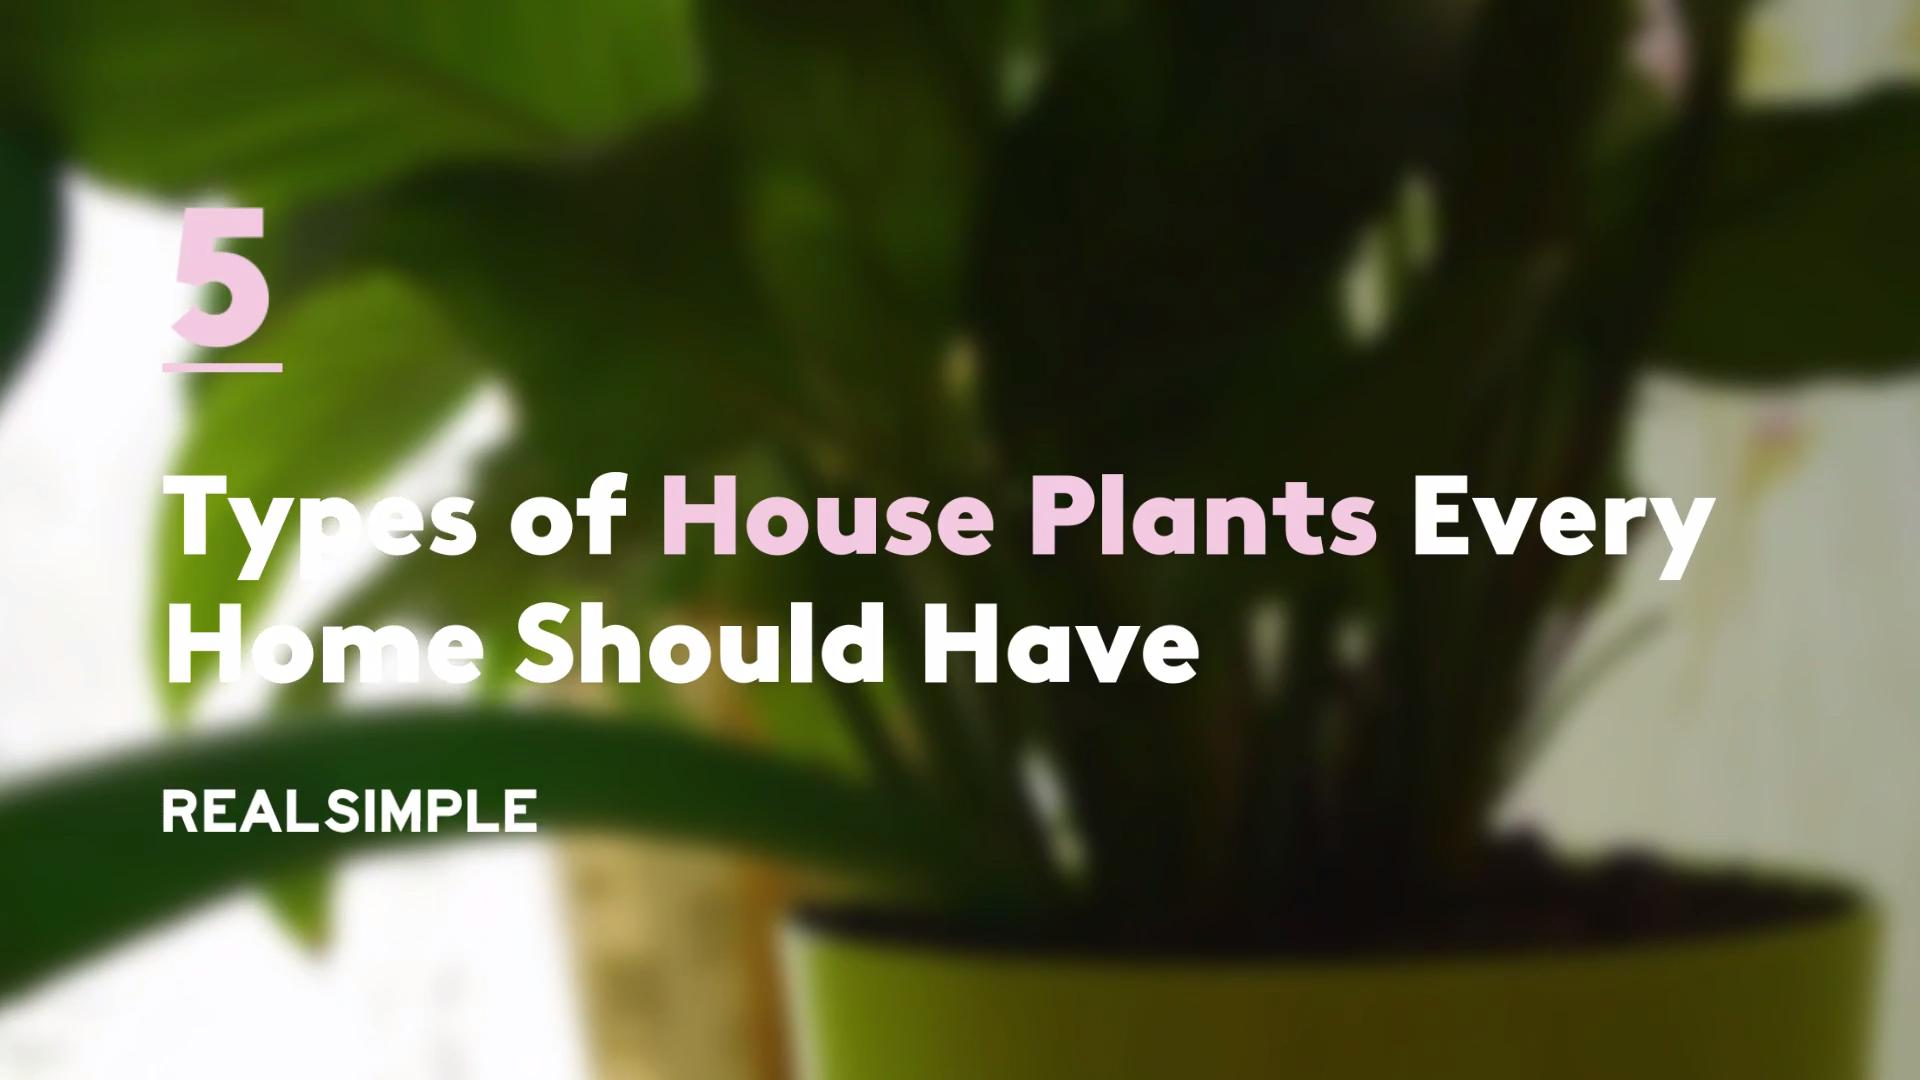 5 Types of House Plants Every Home Should Have